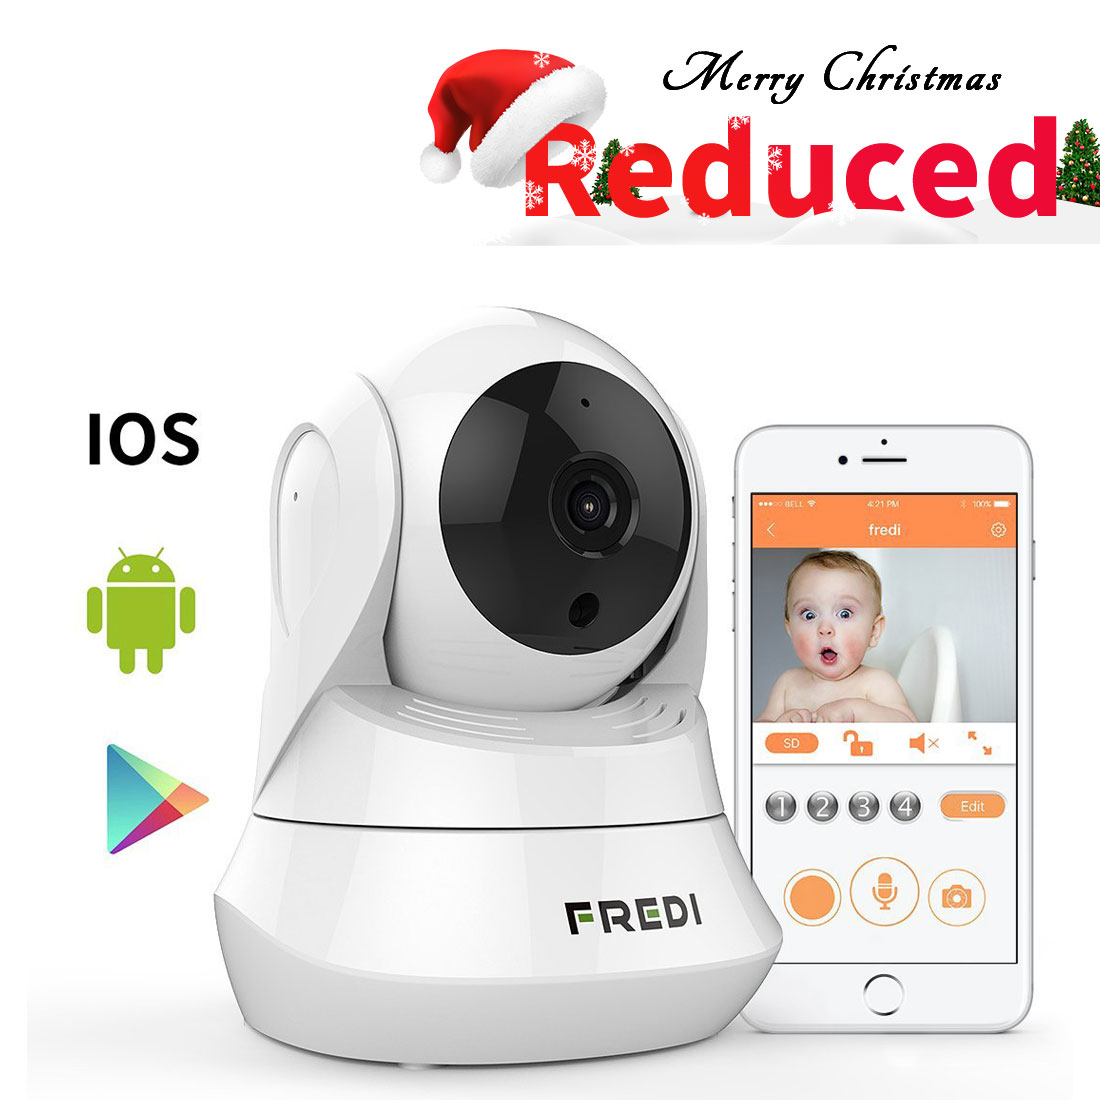 FREDI Day&Night Night Vision WiFi Camera with Remote Viewing Indoor Pan/Tilt Security IP Camera Baby Monitor Plug & Play, 2-Way Audio (White)